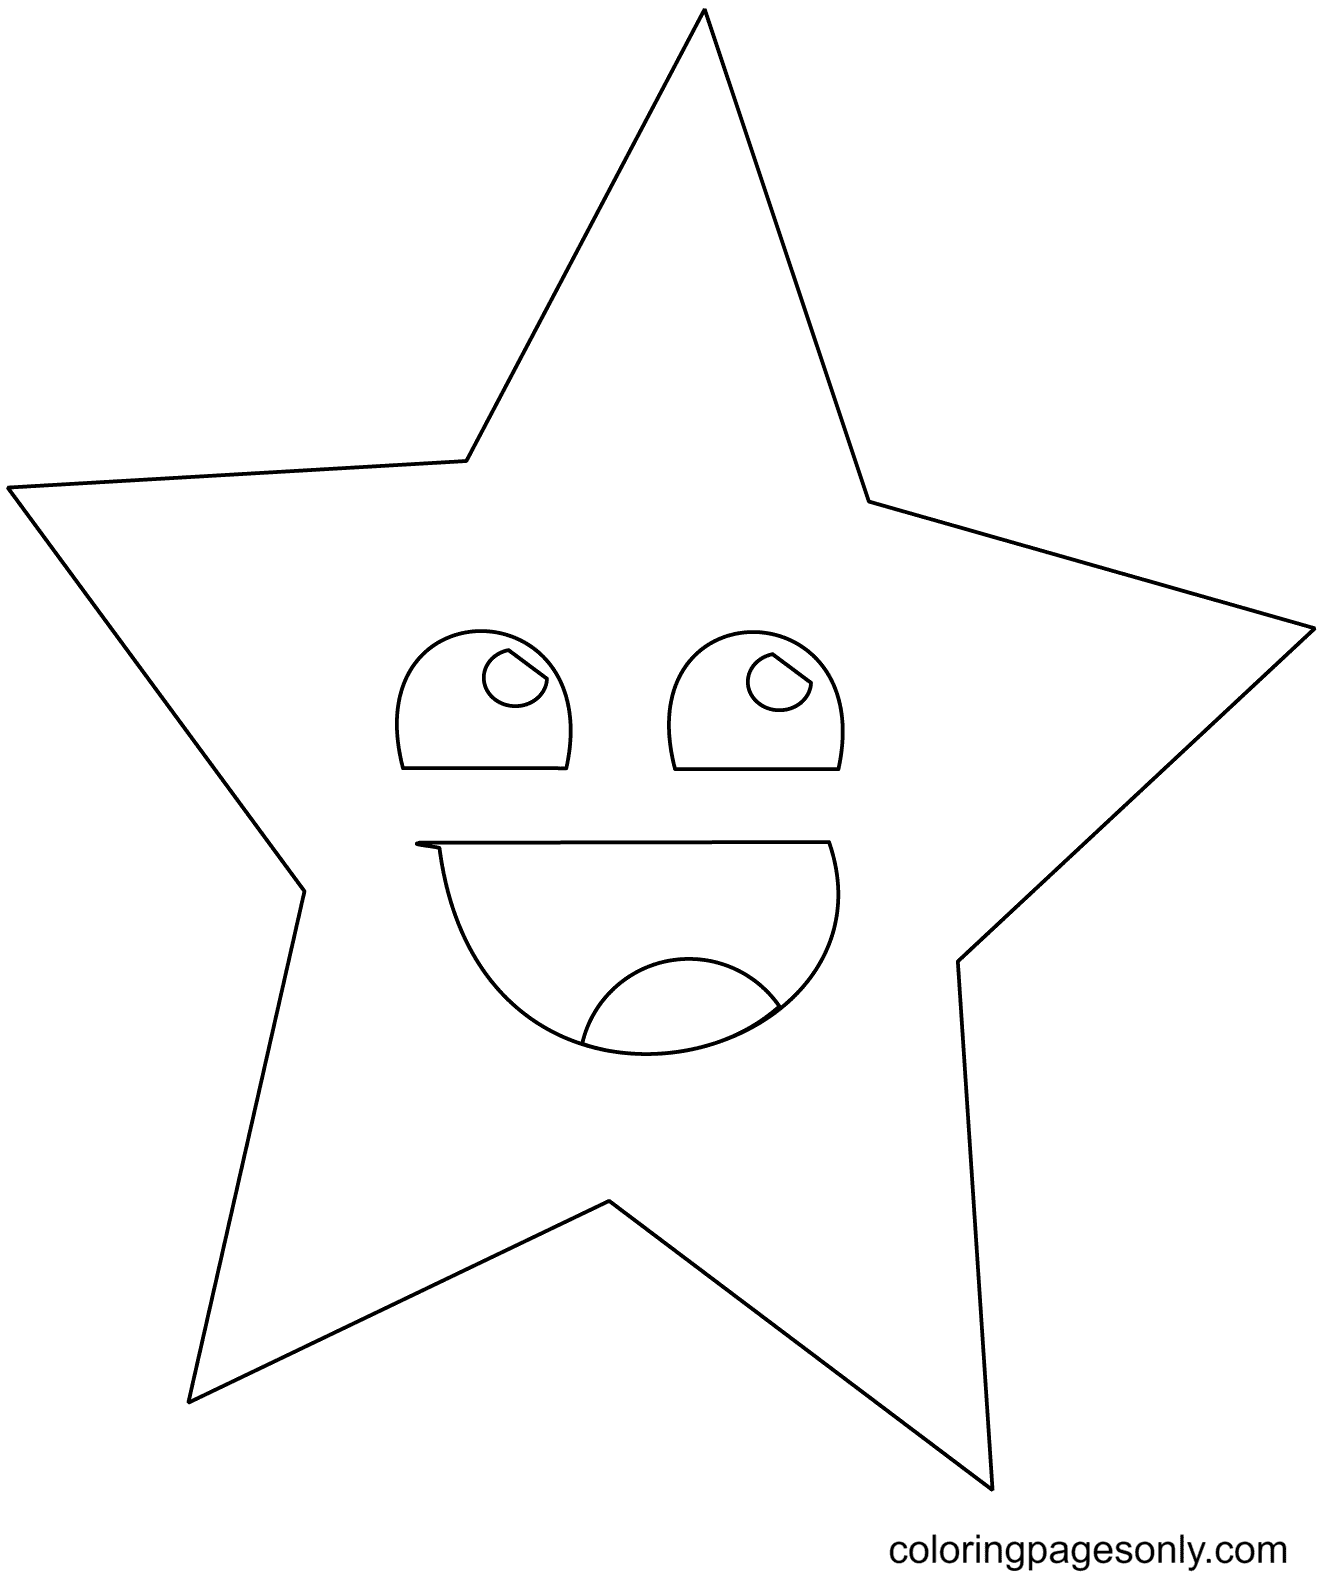 Star Smile Coloring Page